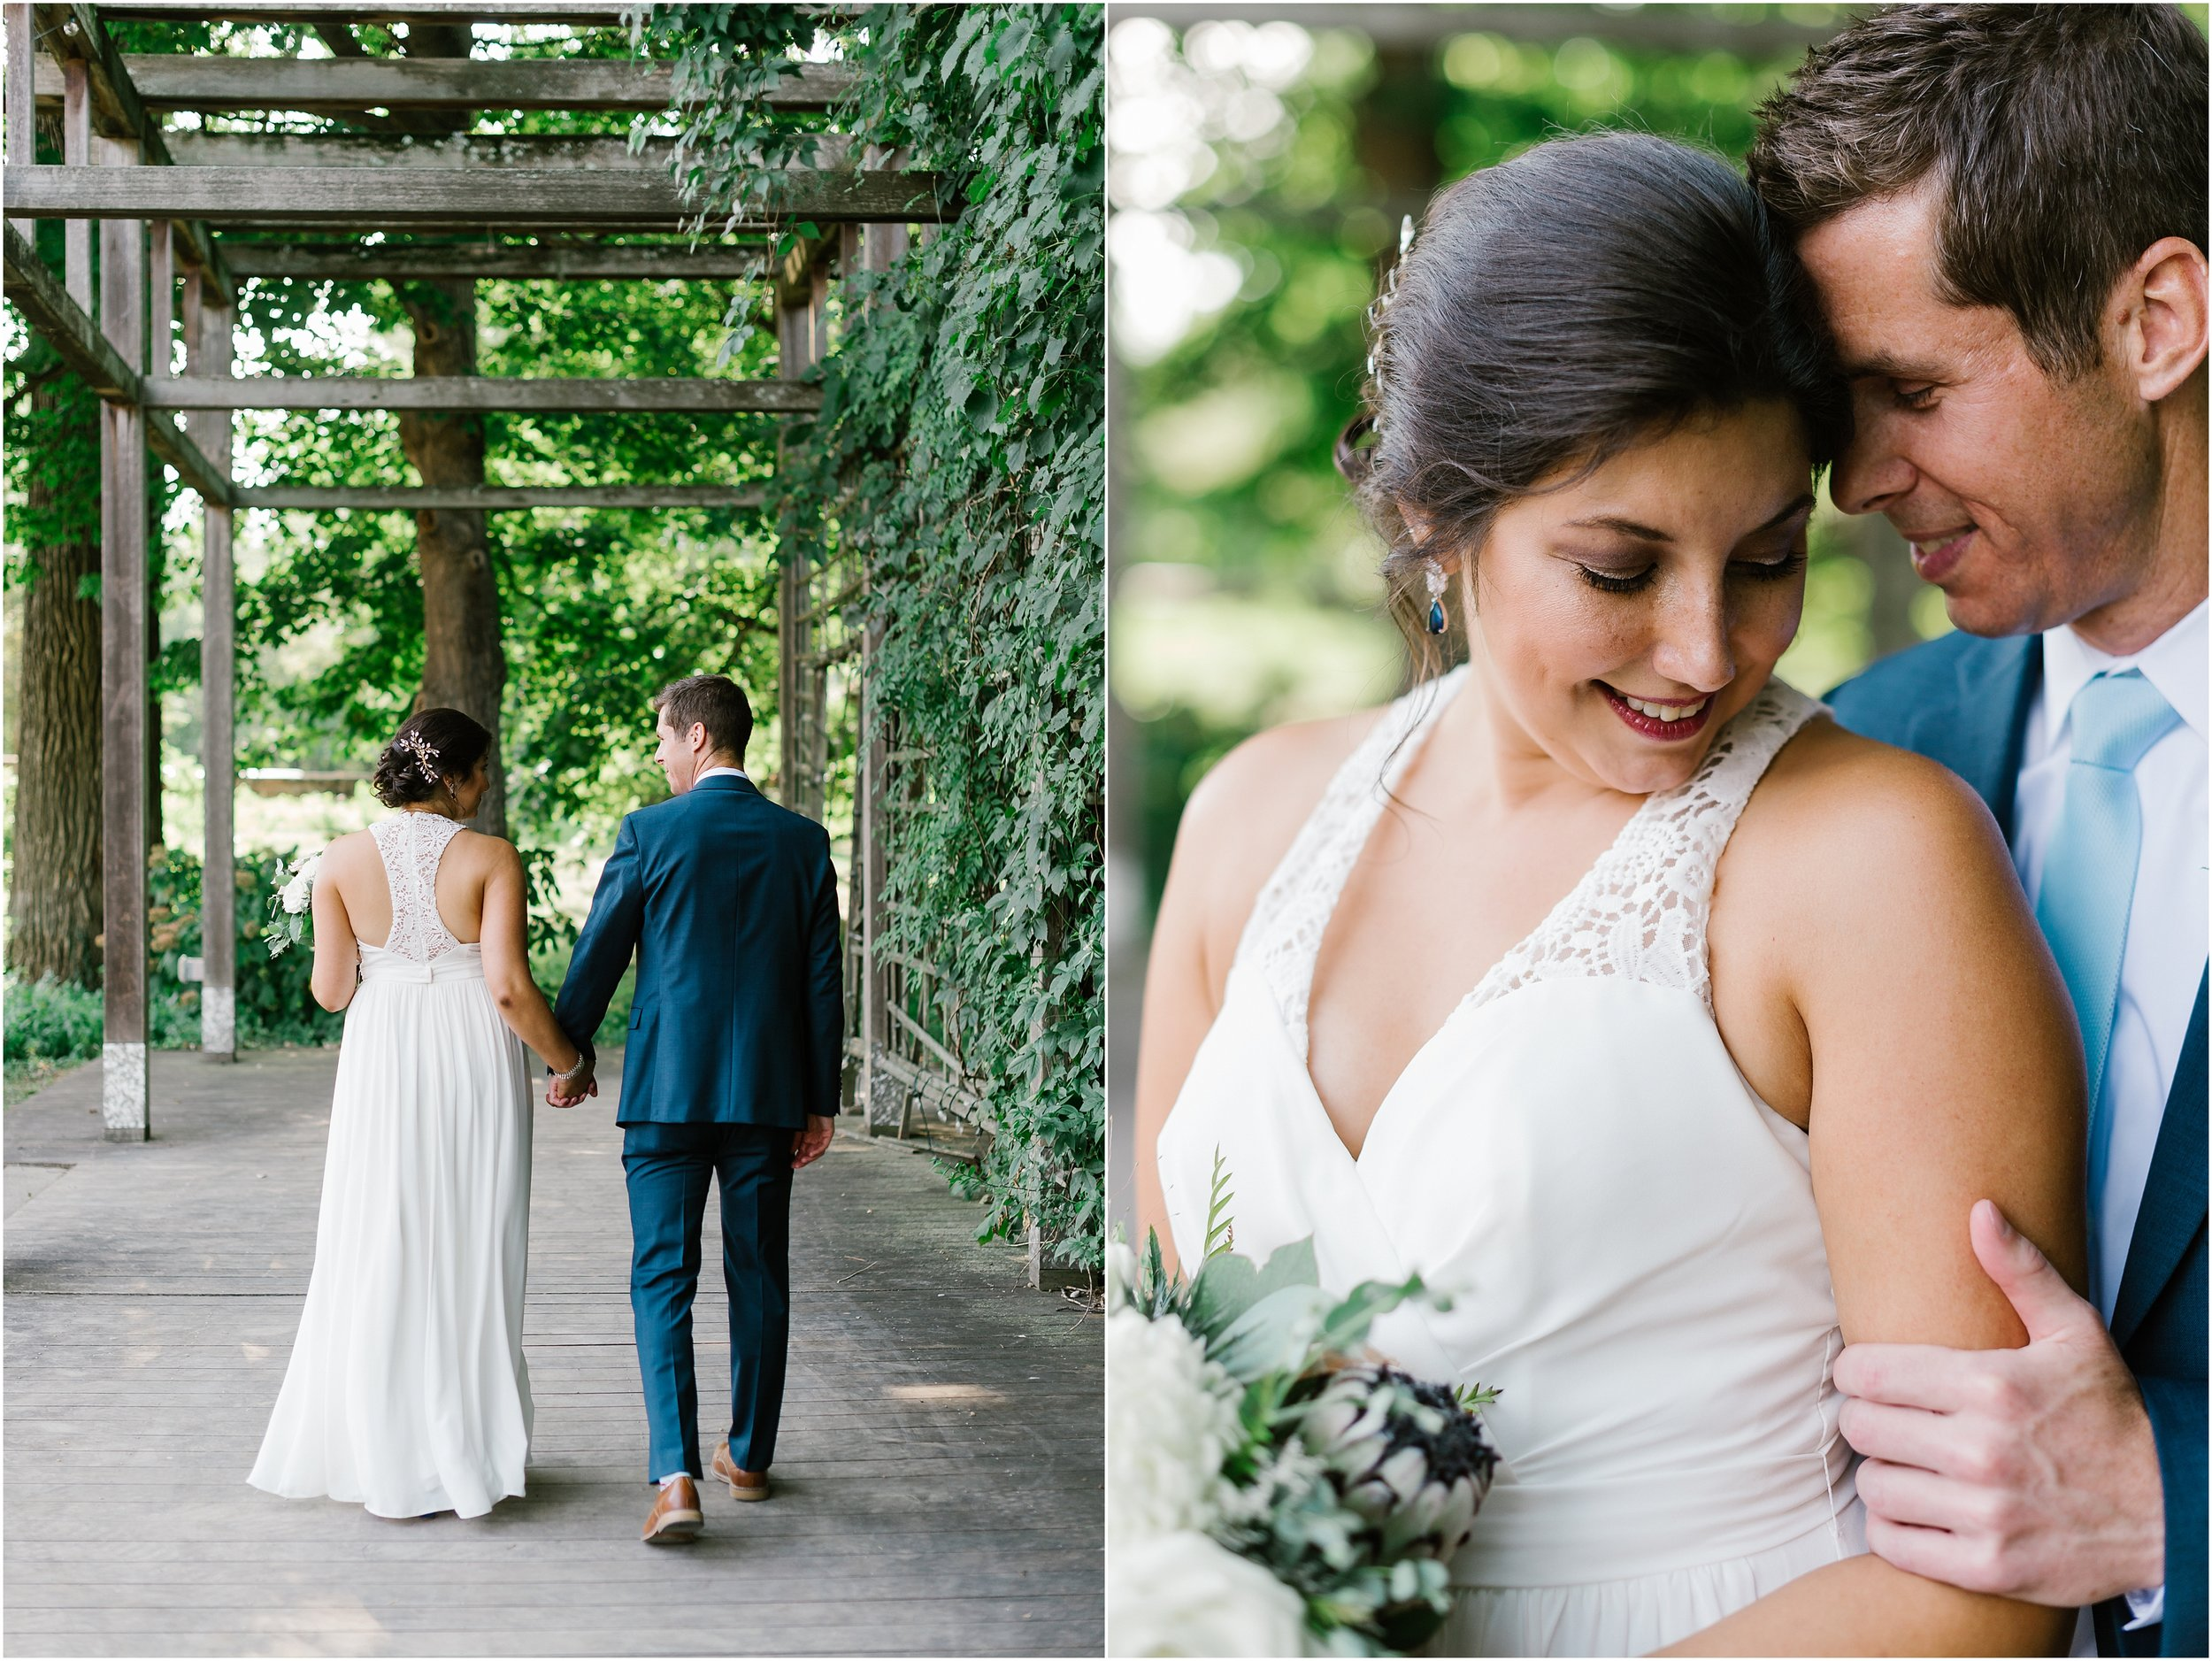 Rebecca Shehorn Photography Indianapolis Wedding Photographer Just Pop In Wedding_0637.jpg